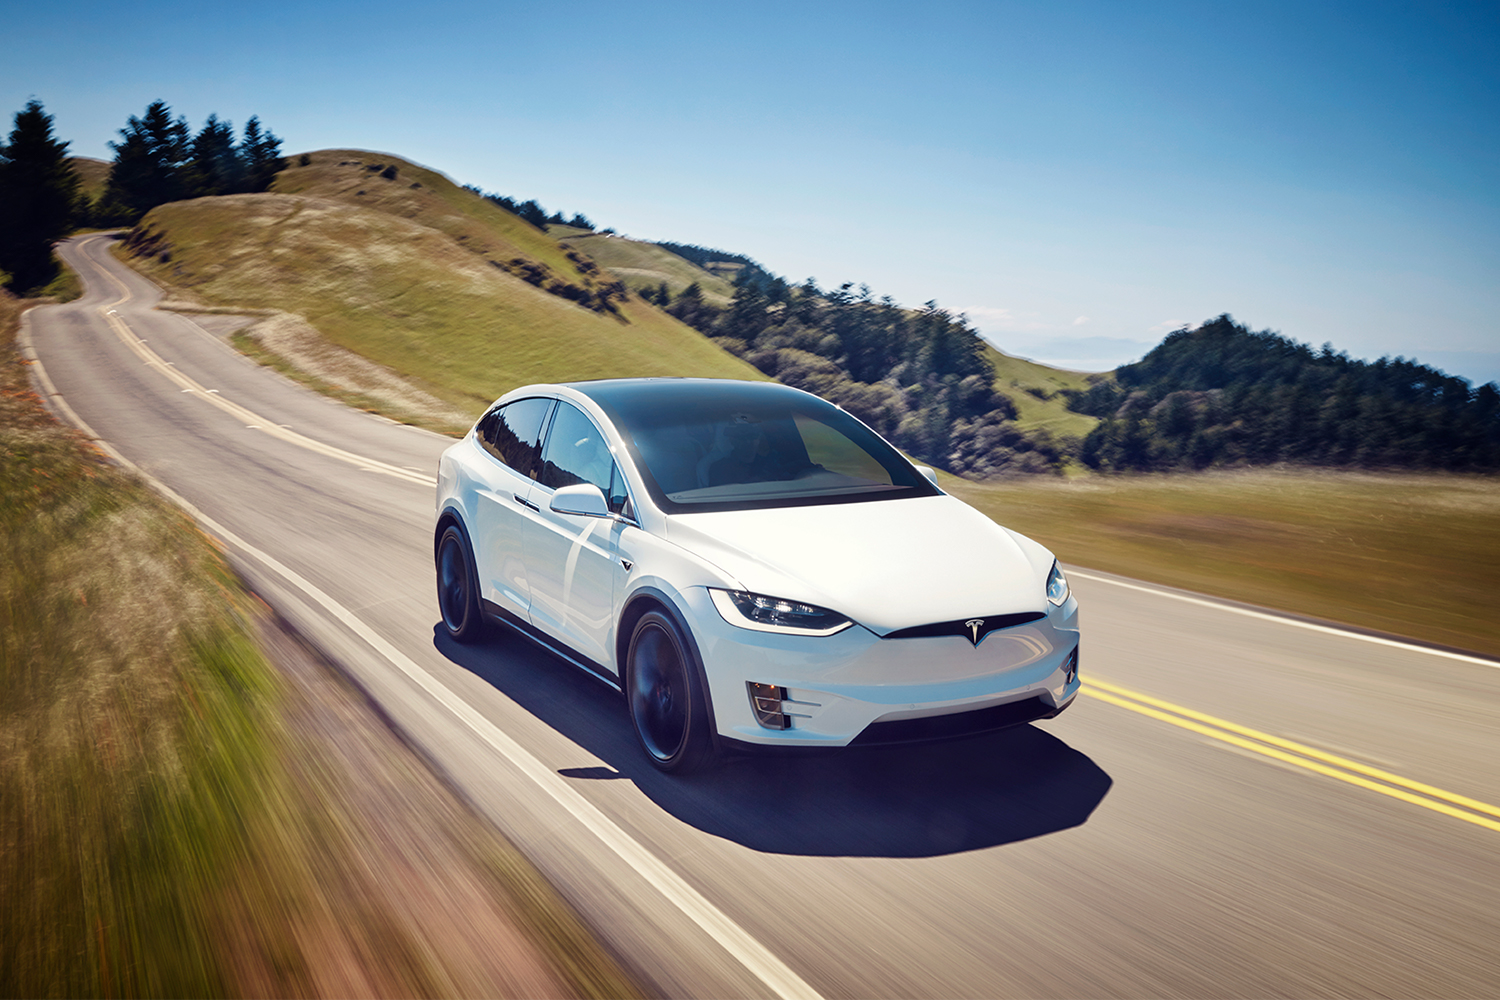 A Tesla Model X electric SUV in white